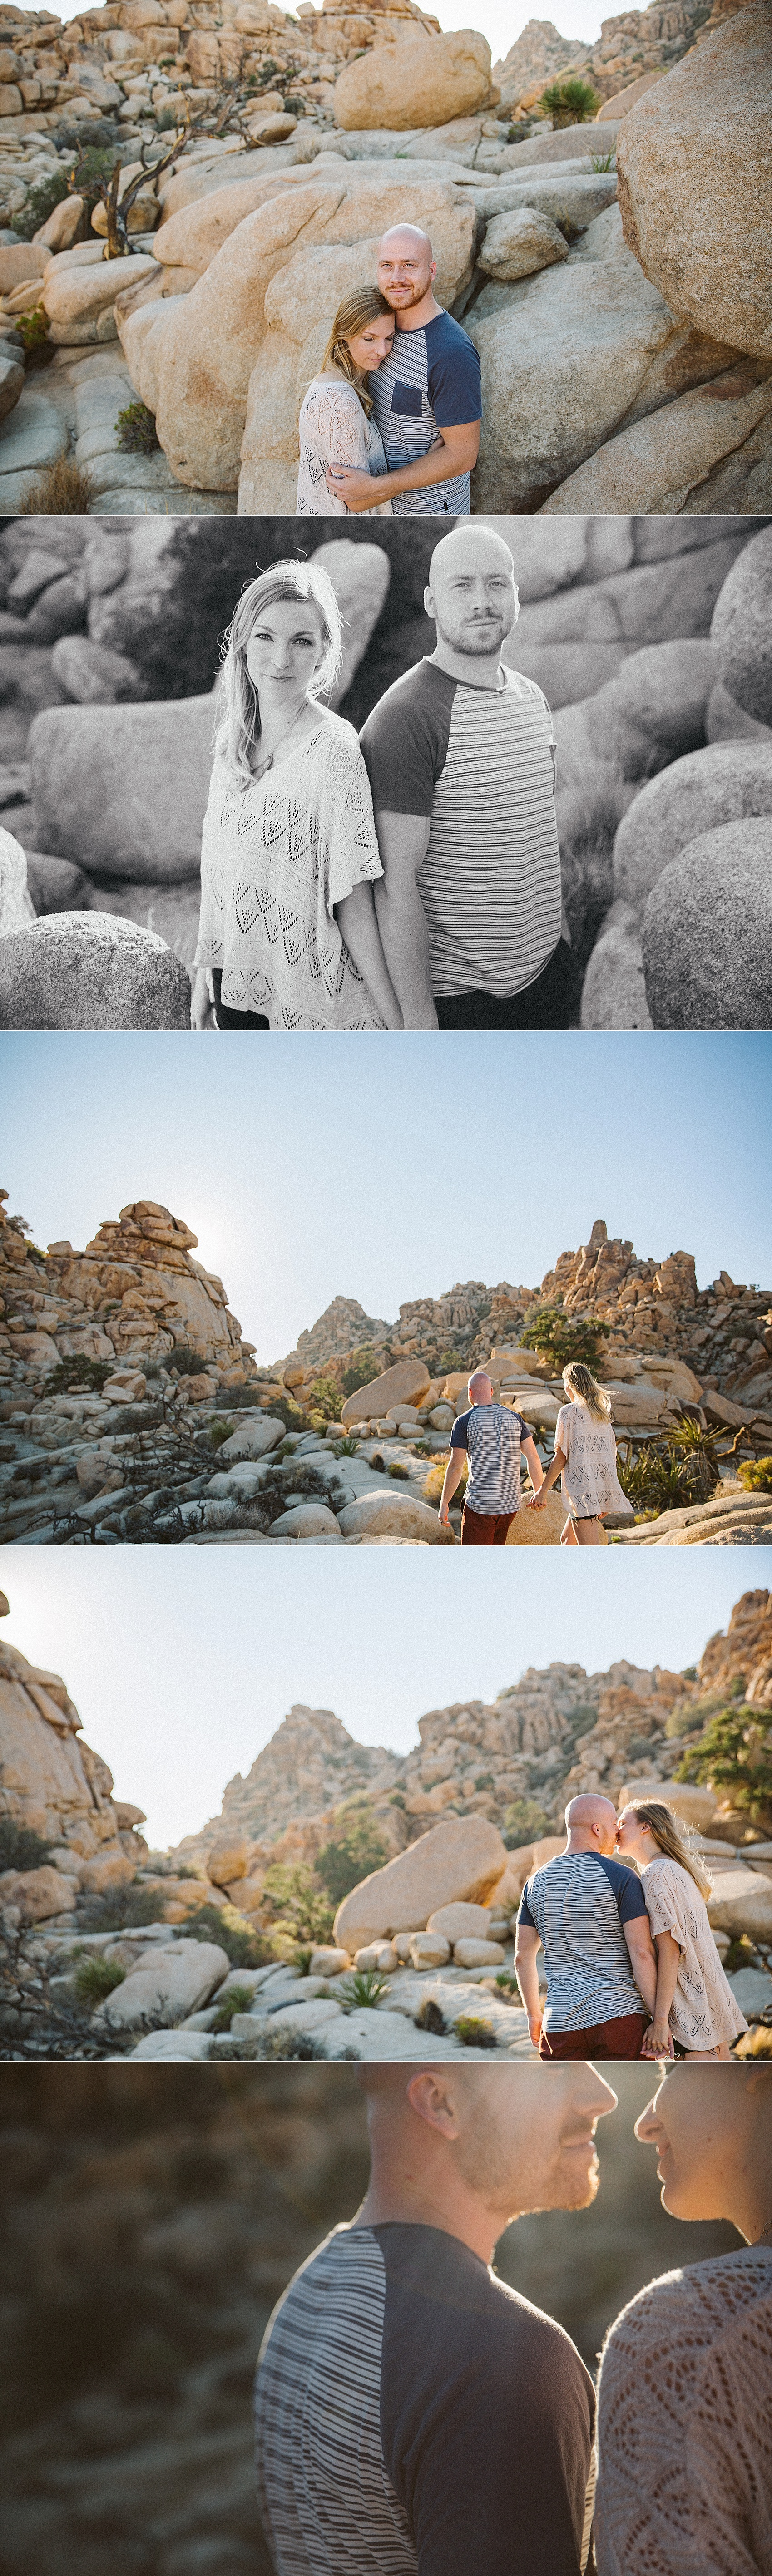 jake-and-katie-engagement-photos-39